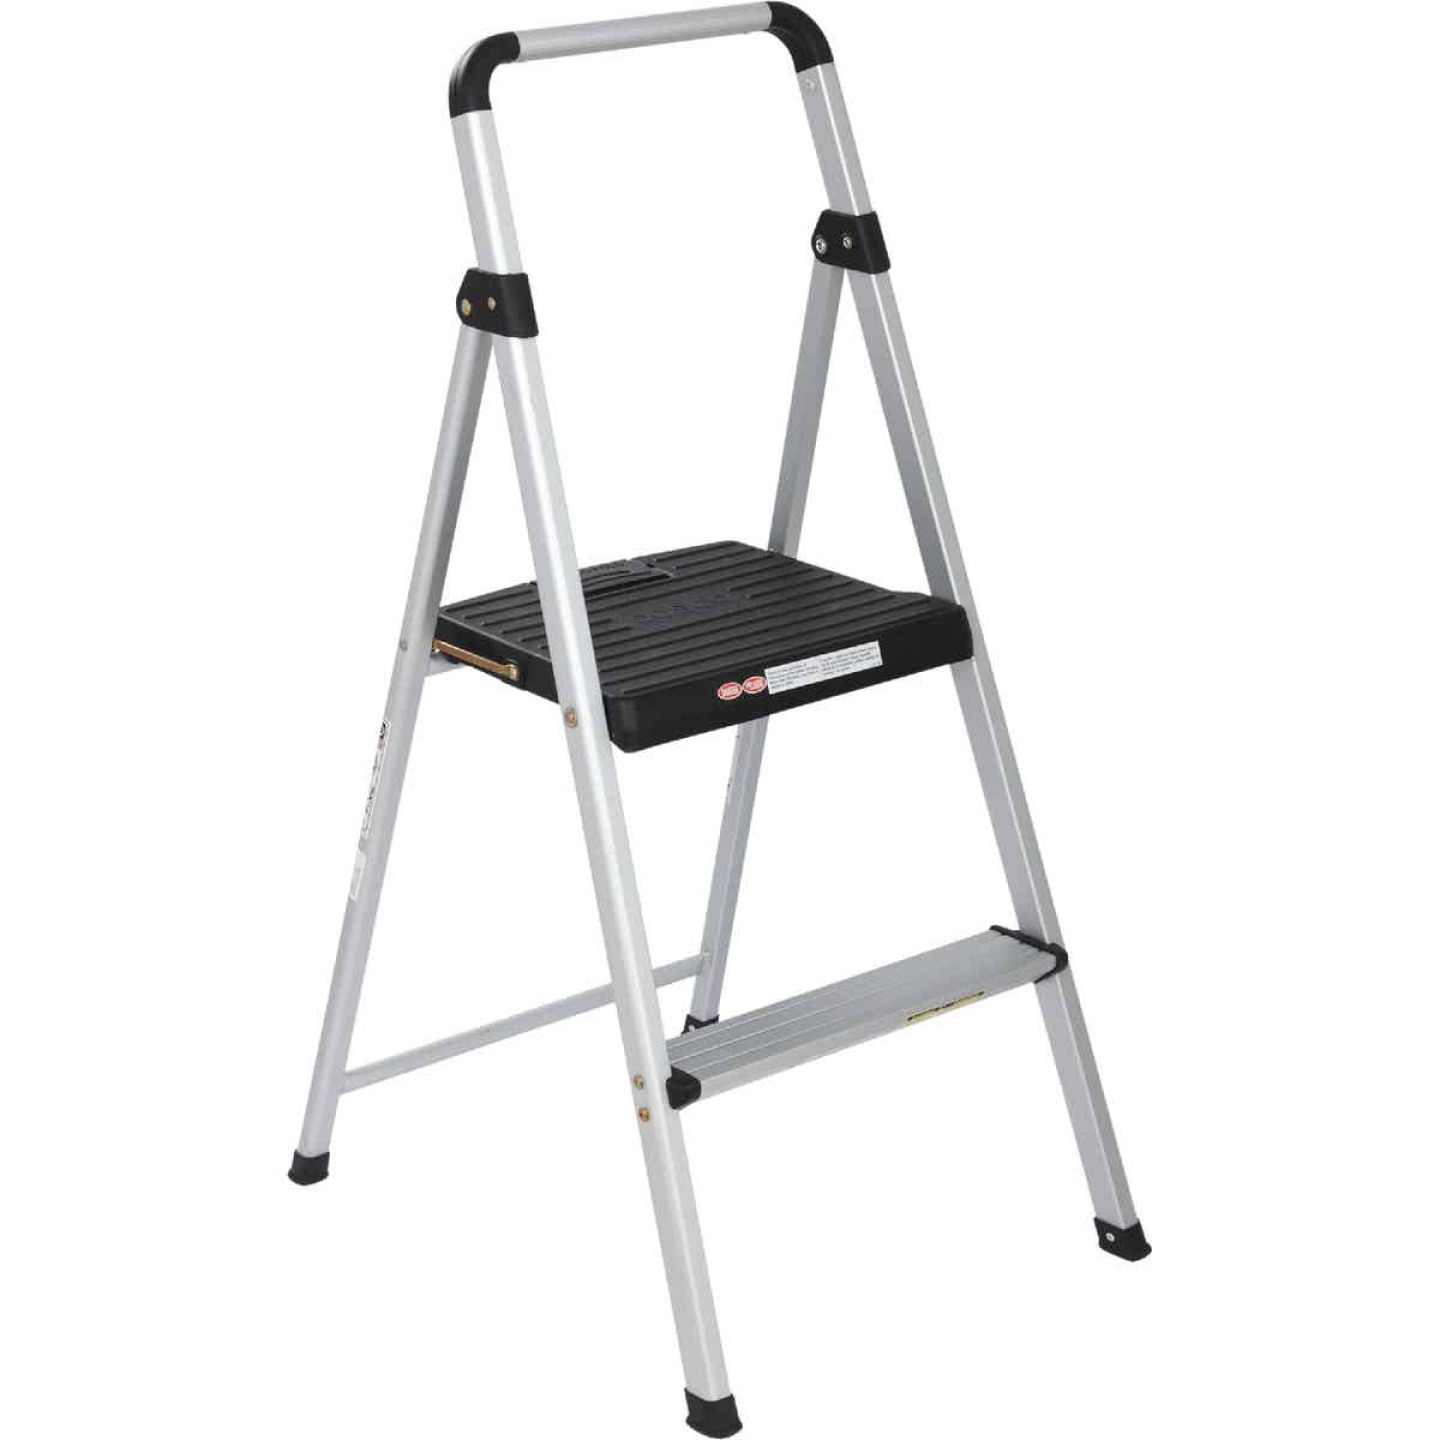 COSCO Lightweight 2-Step Folding Step Stool Image 1